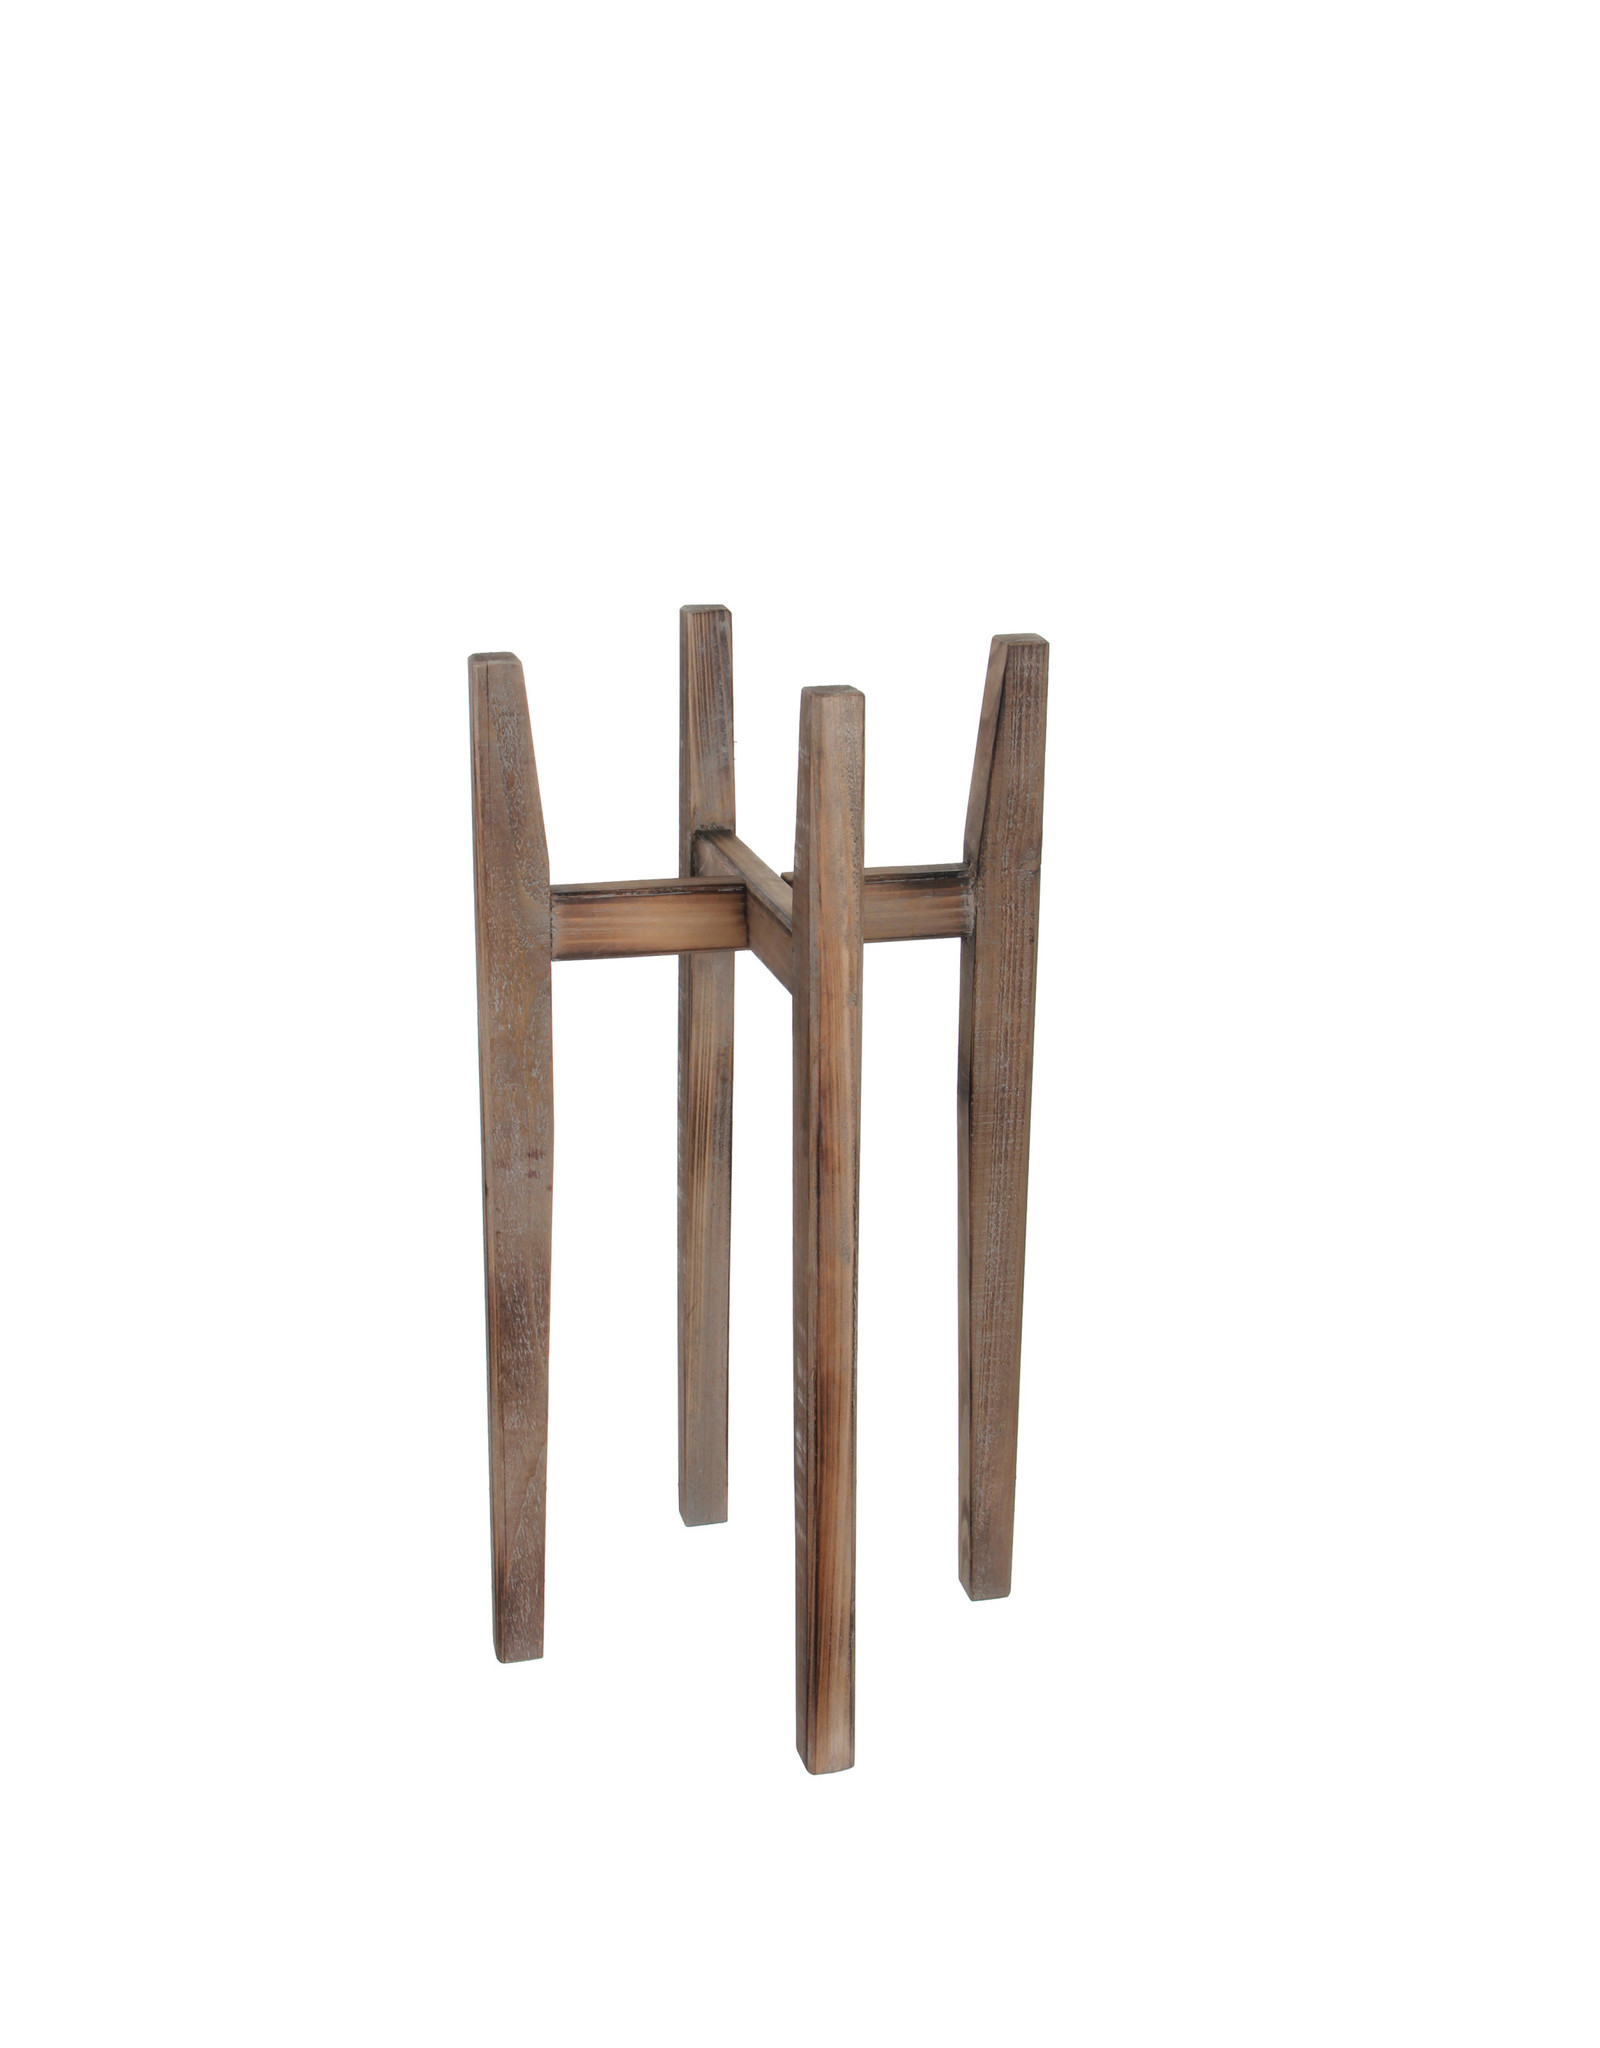 Mica Ascot Plant Stand Wood